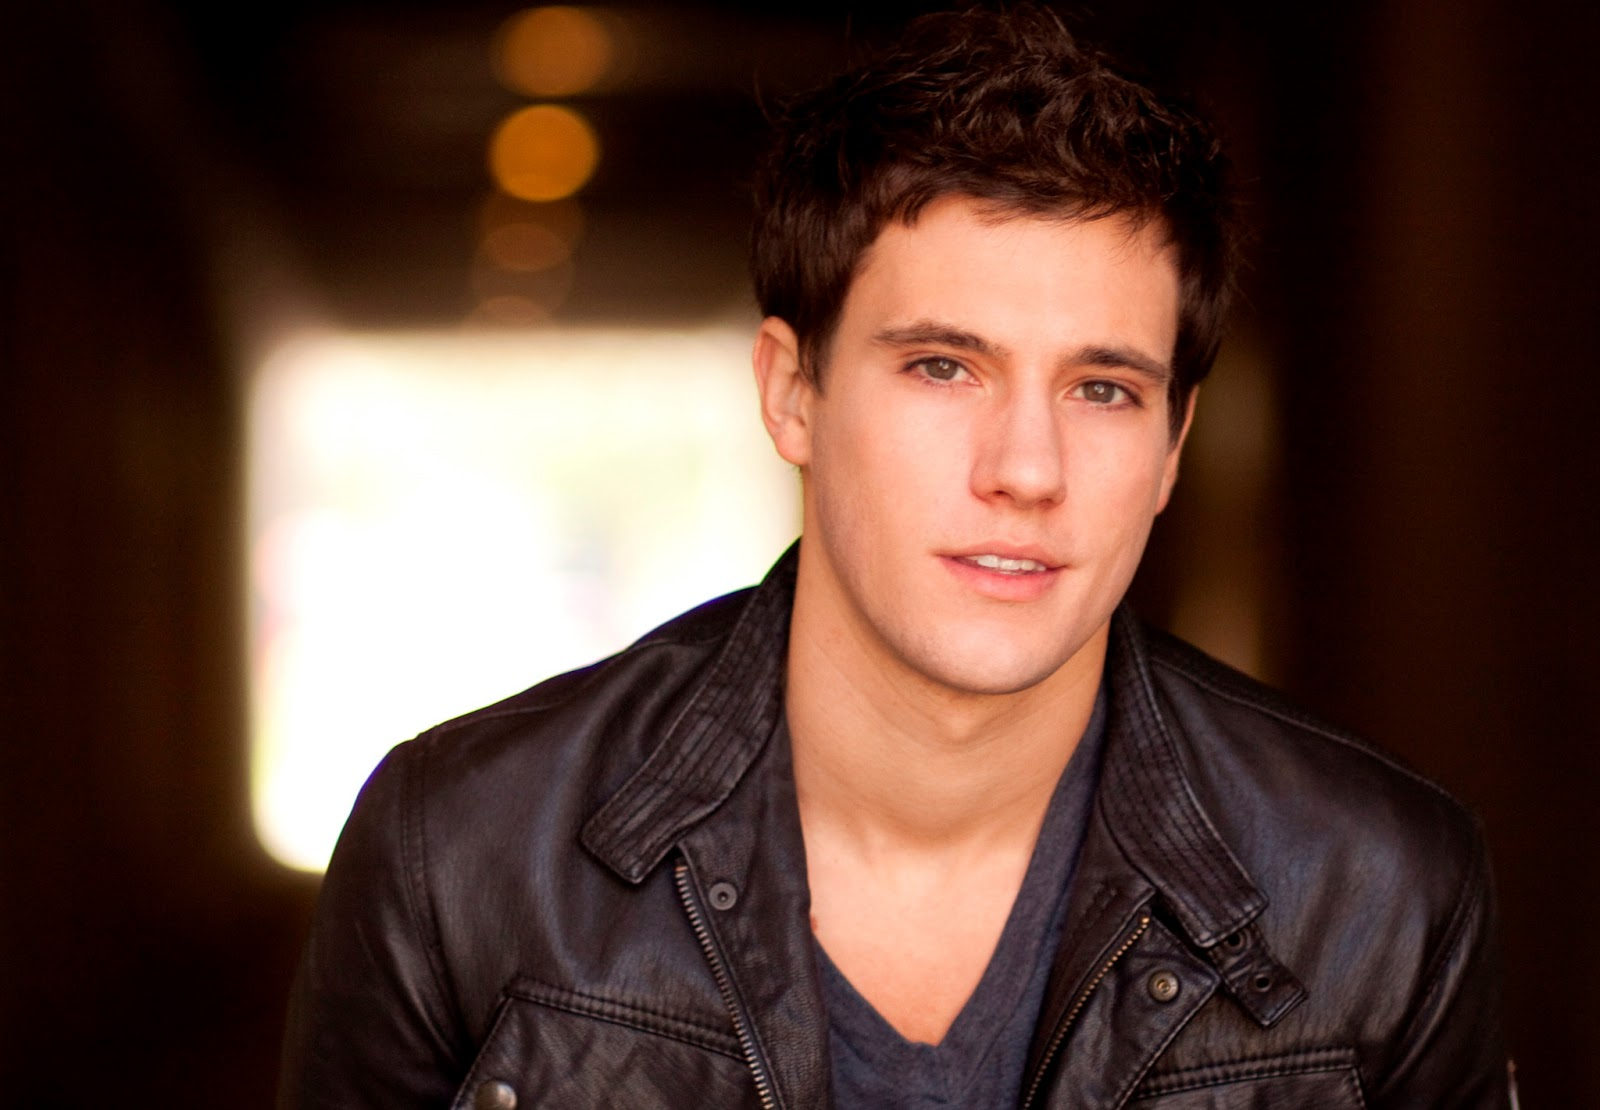 drew roy fan site